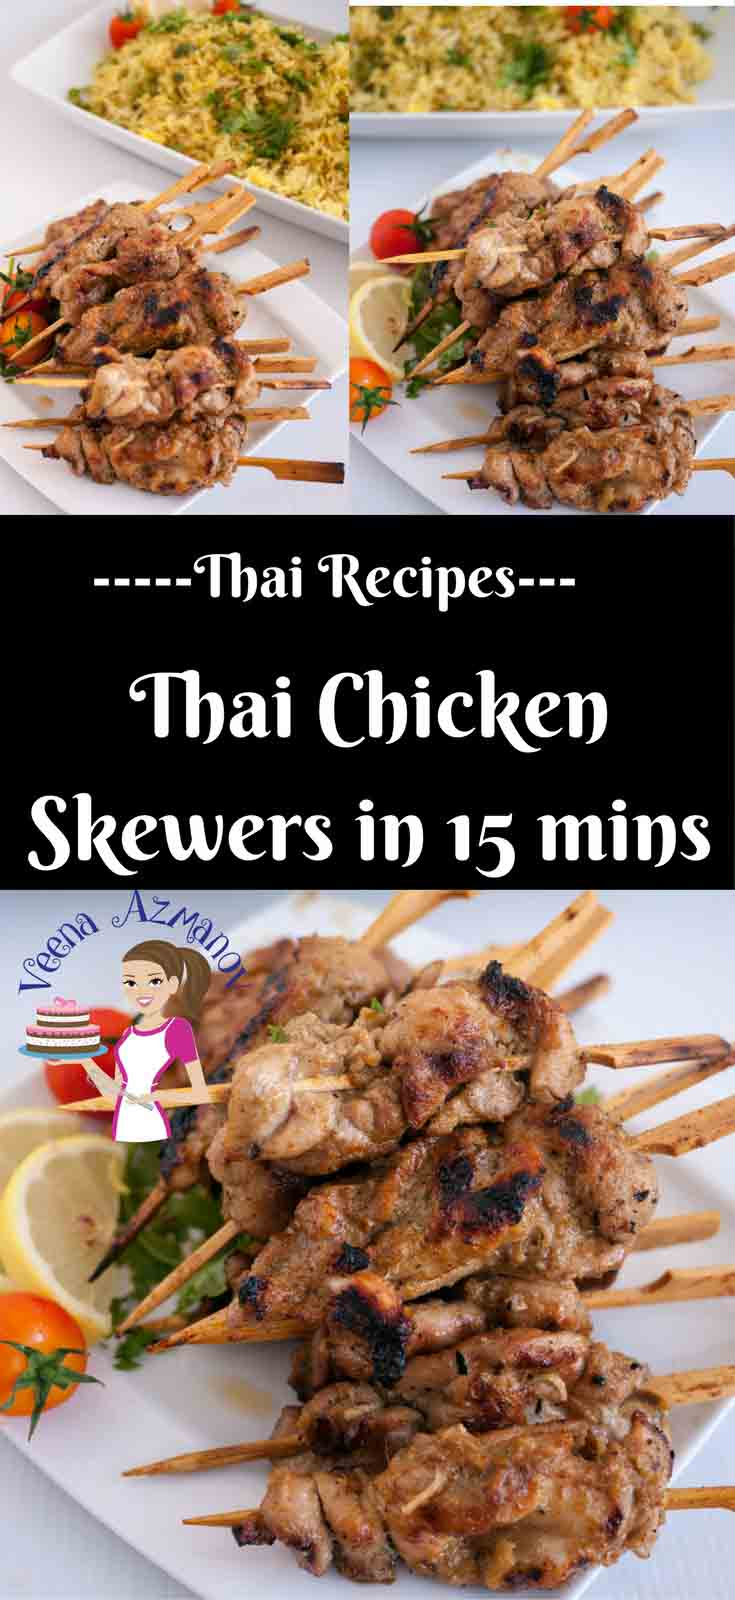 Busy weekday cooking has got to be easy simple and quick. These Thai chicken skewers will bring dinner on the table in 15 minutes. The skewers take less then 10 minutes to prepare and cook. You can serve these over rice, a bowl of noodle or in a wrap with your favorite salad.